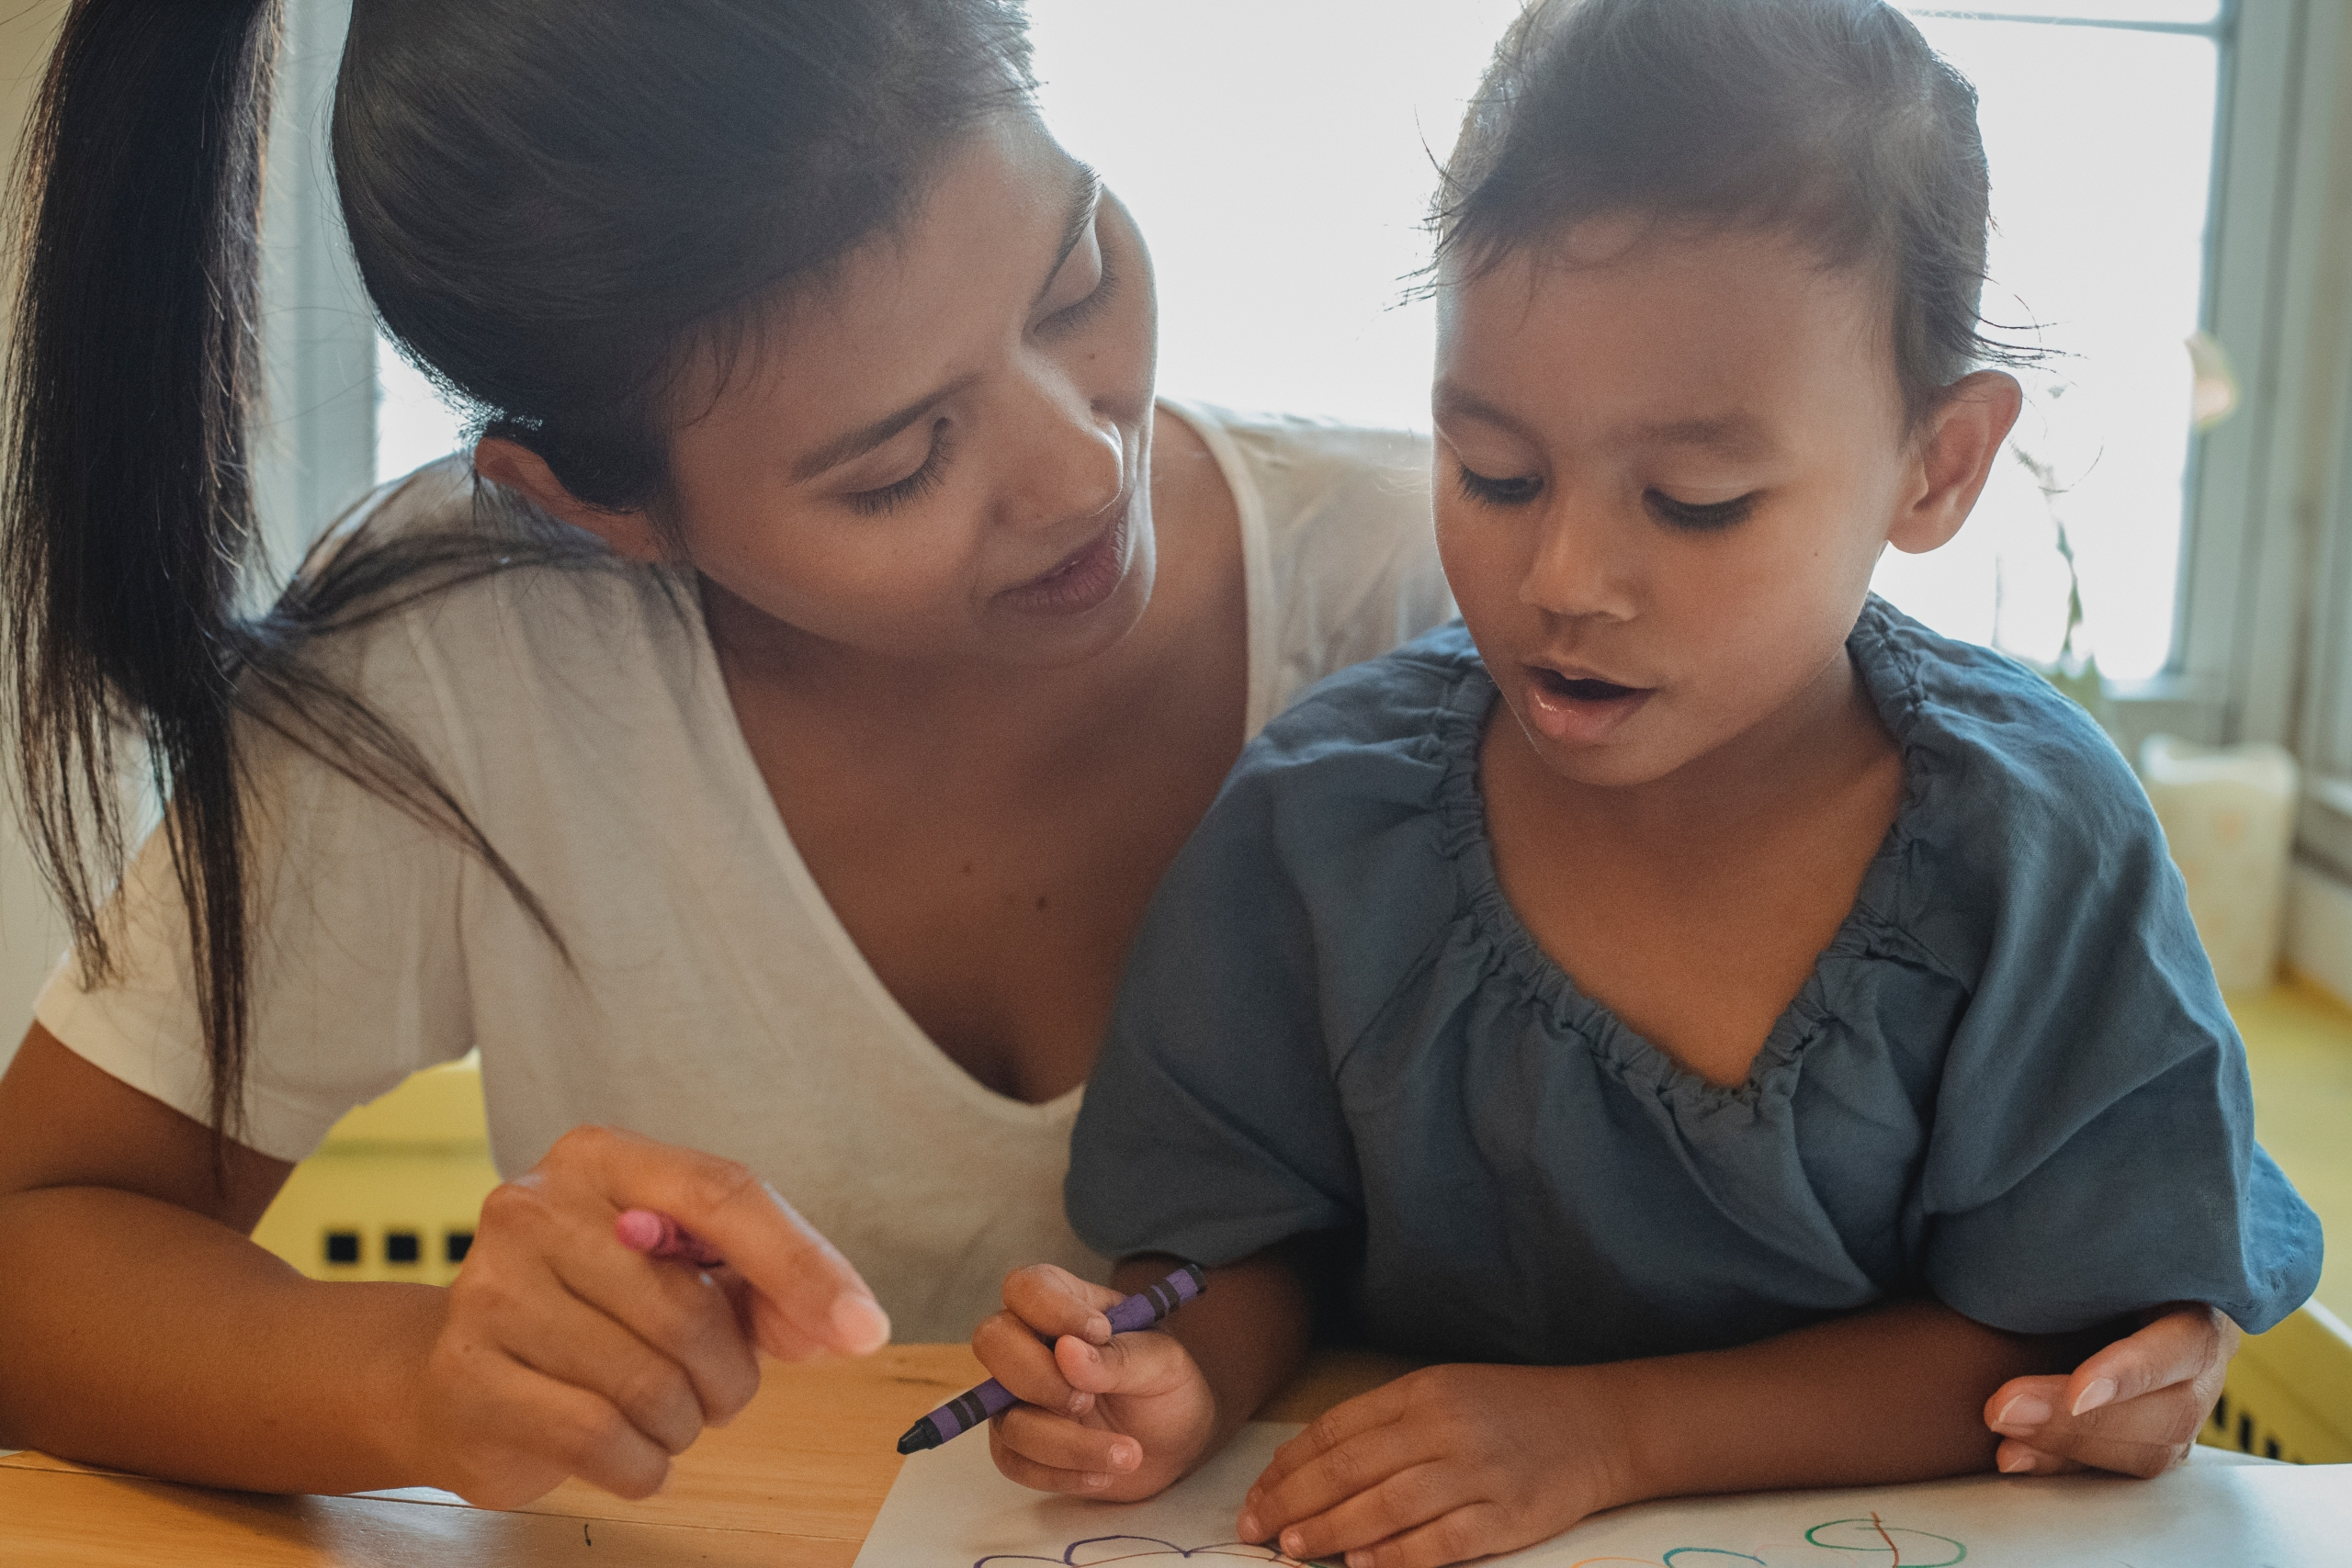 Woman and child coloring, making use of child care resources